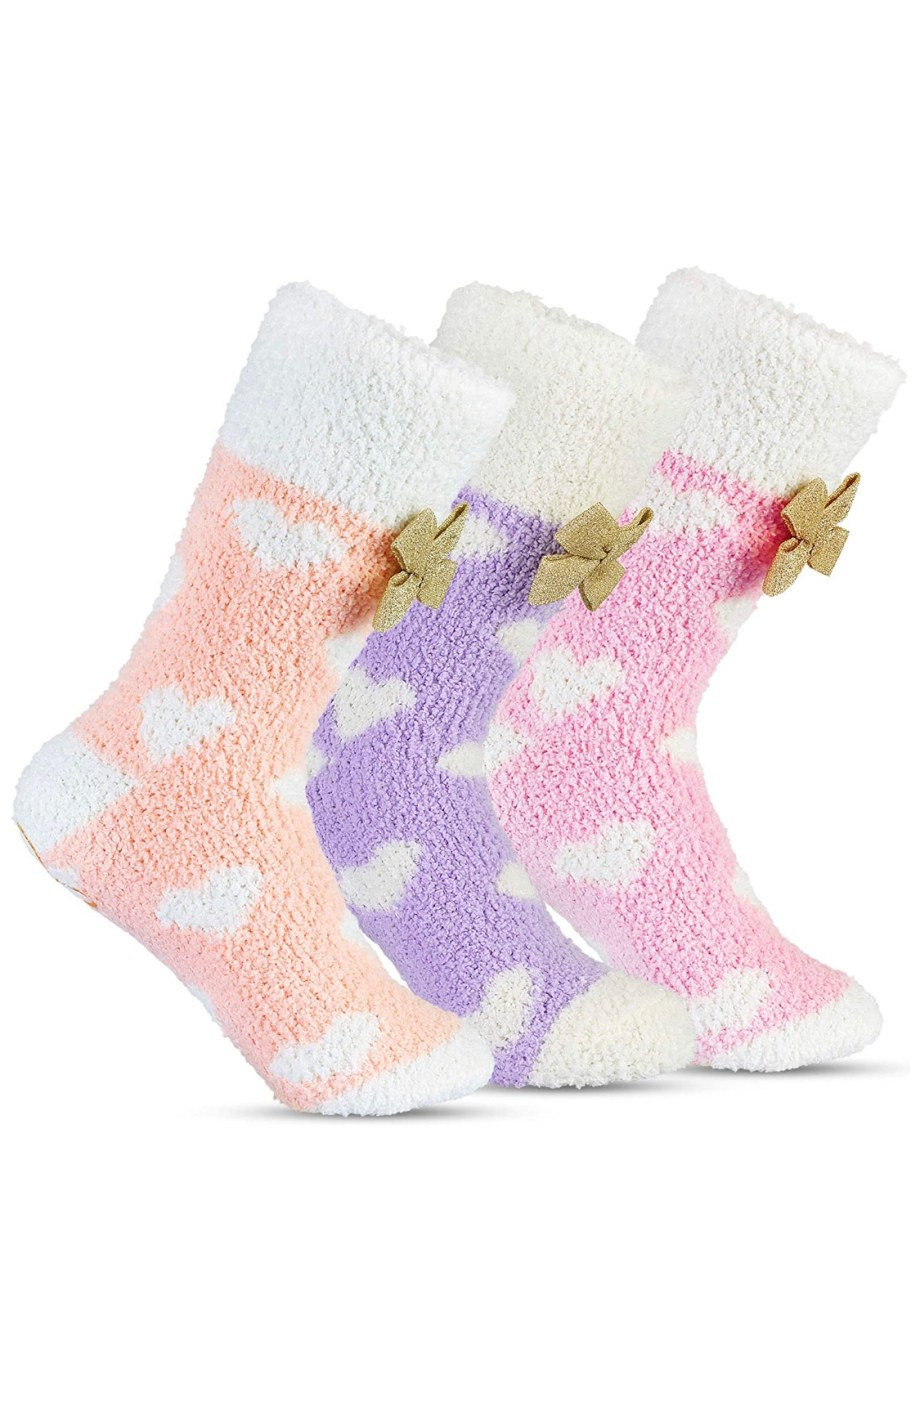 Heart-Print-Cozy-Socks-by-Karlee-Smith-3-Pack